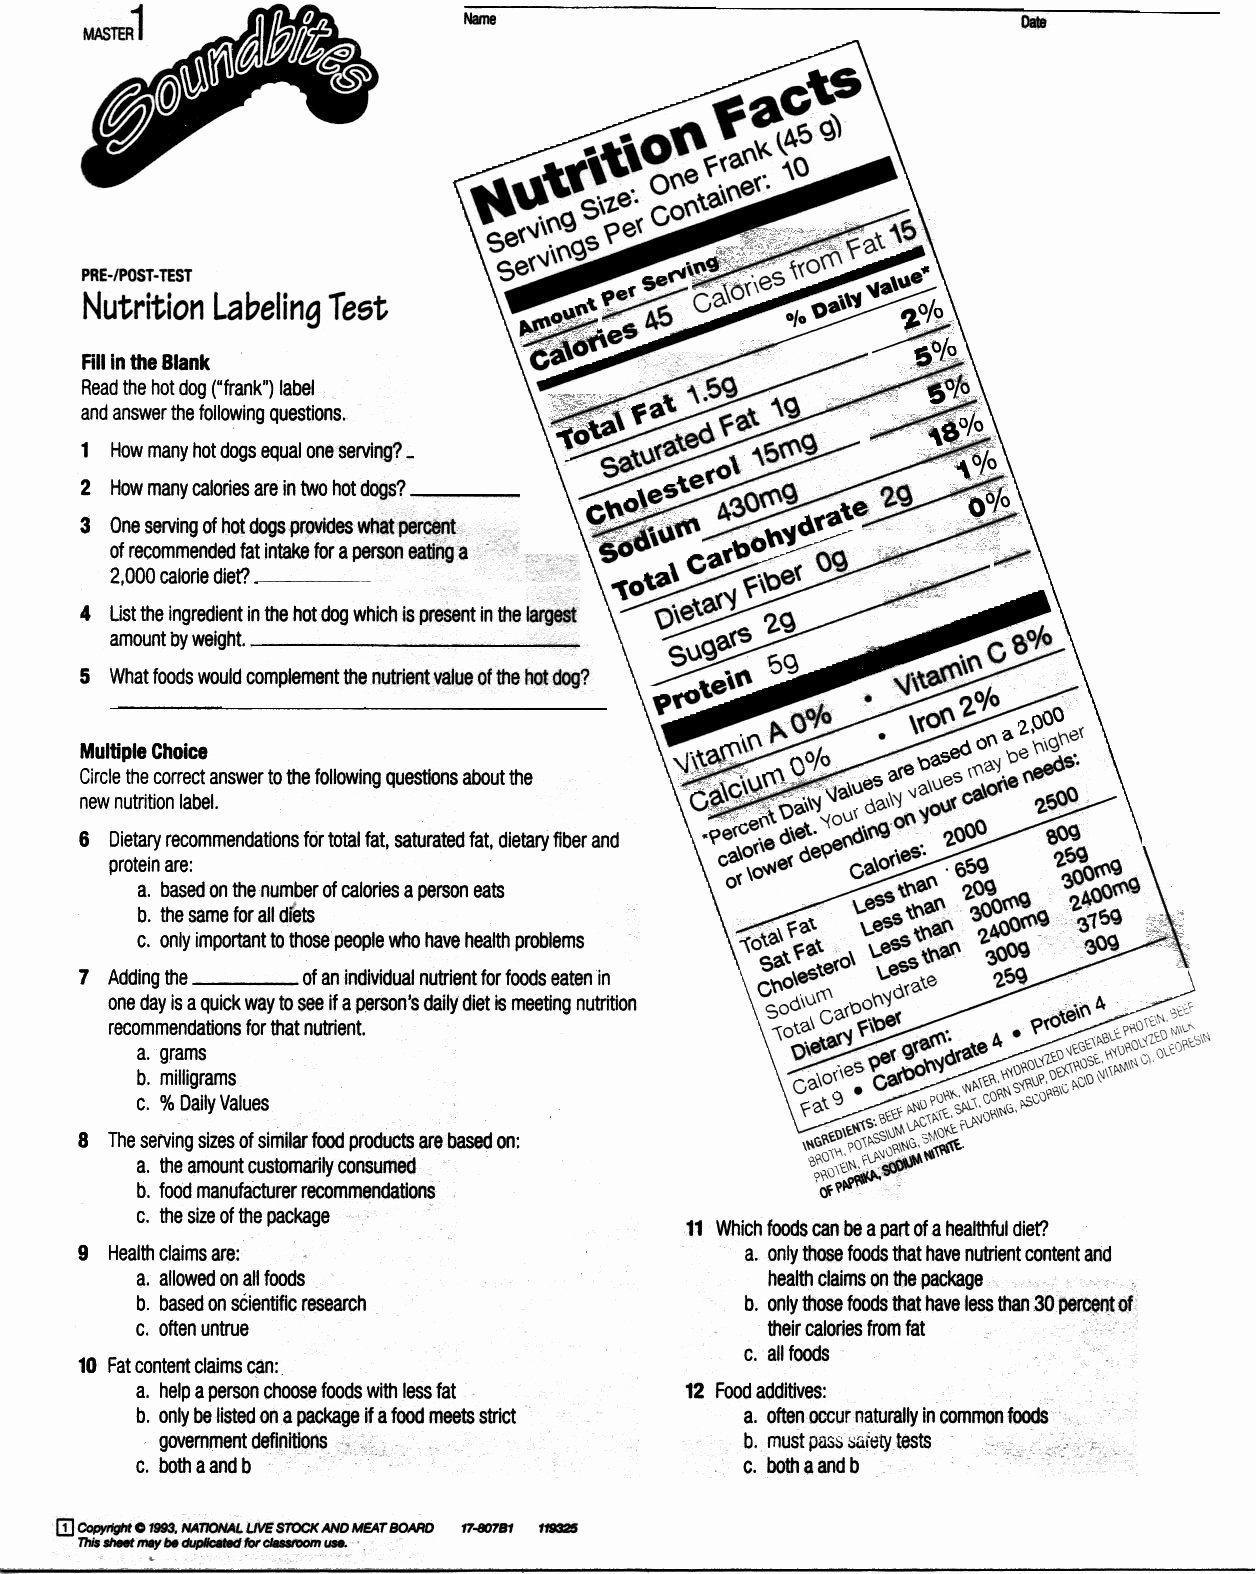 Nutrition Label Worksheet Answers Elegant Reading Nutrition Labels Worksheet Answers